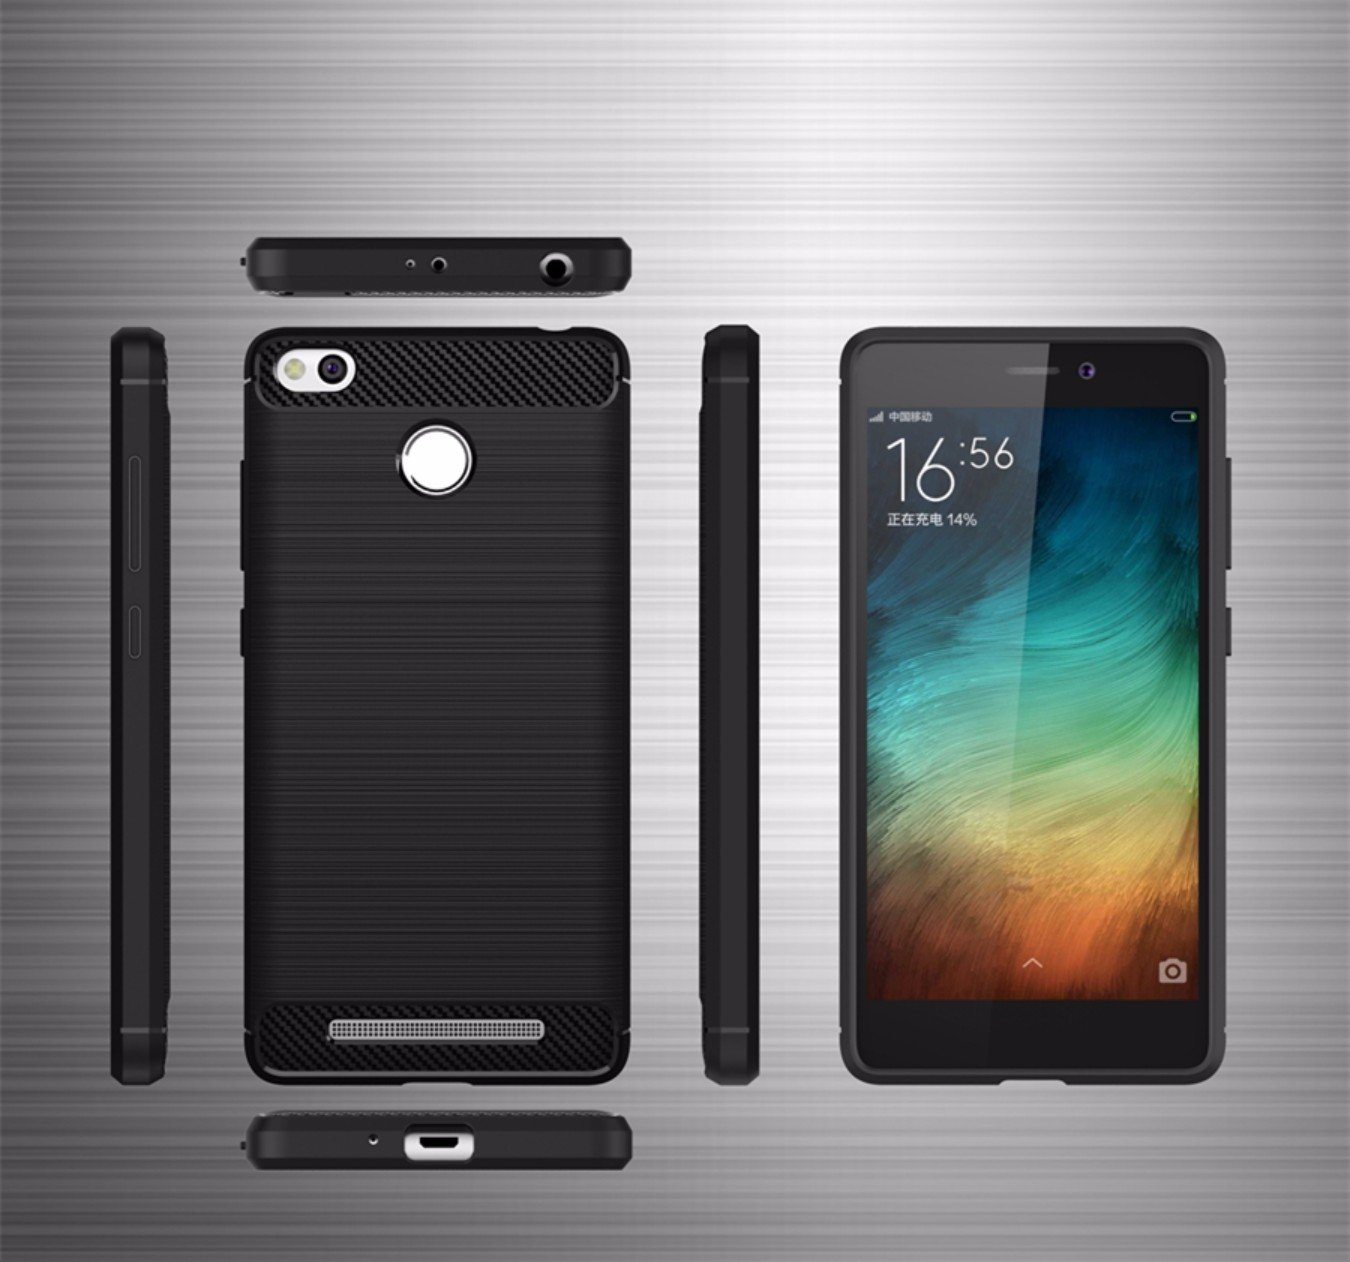 Norby Rugged Armor Shock Proof Back Cover Case For Xiaomi Redmi 3s Casing Handphone Tempered Glass Series Black Free Ultrathinblack Primewith Fingerprint Scanner Holeblack Electronics